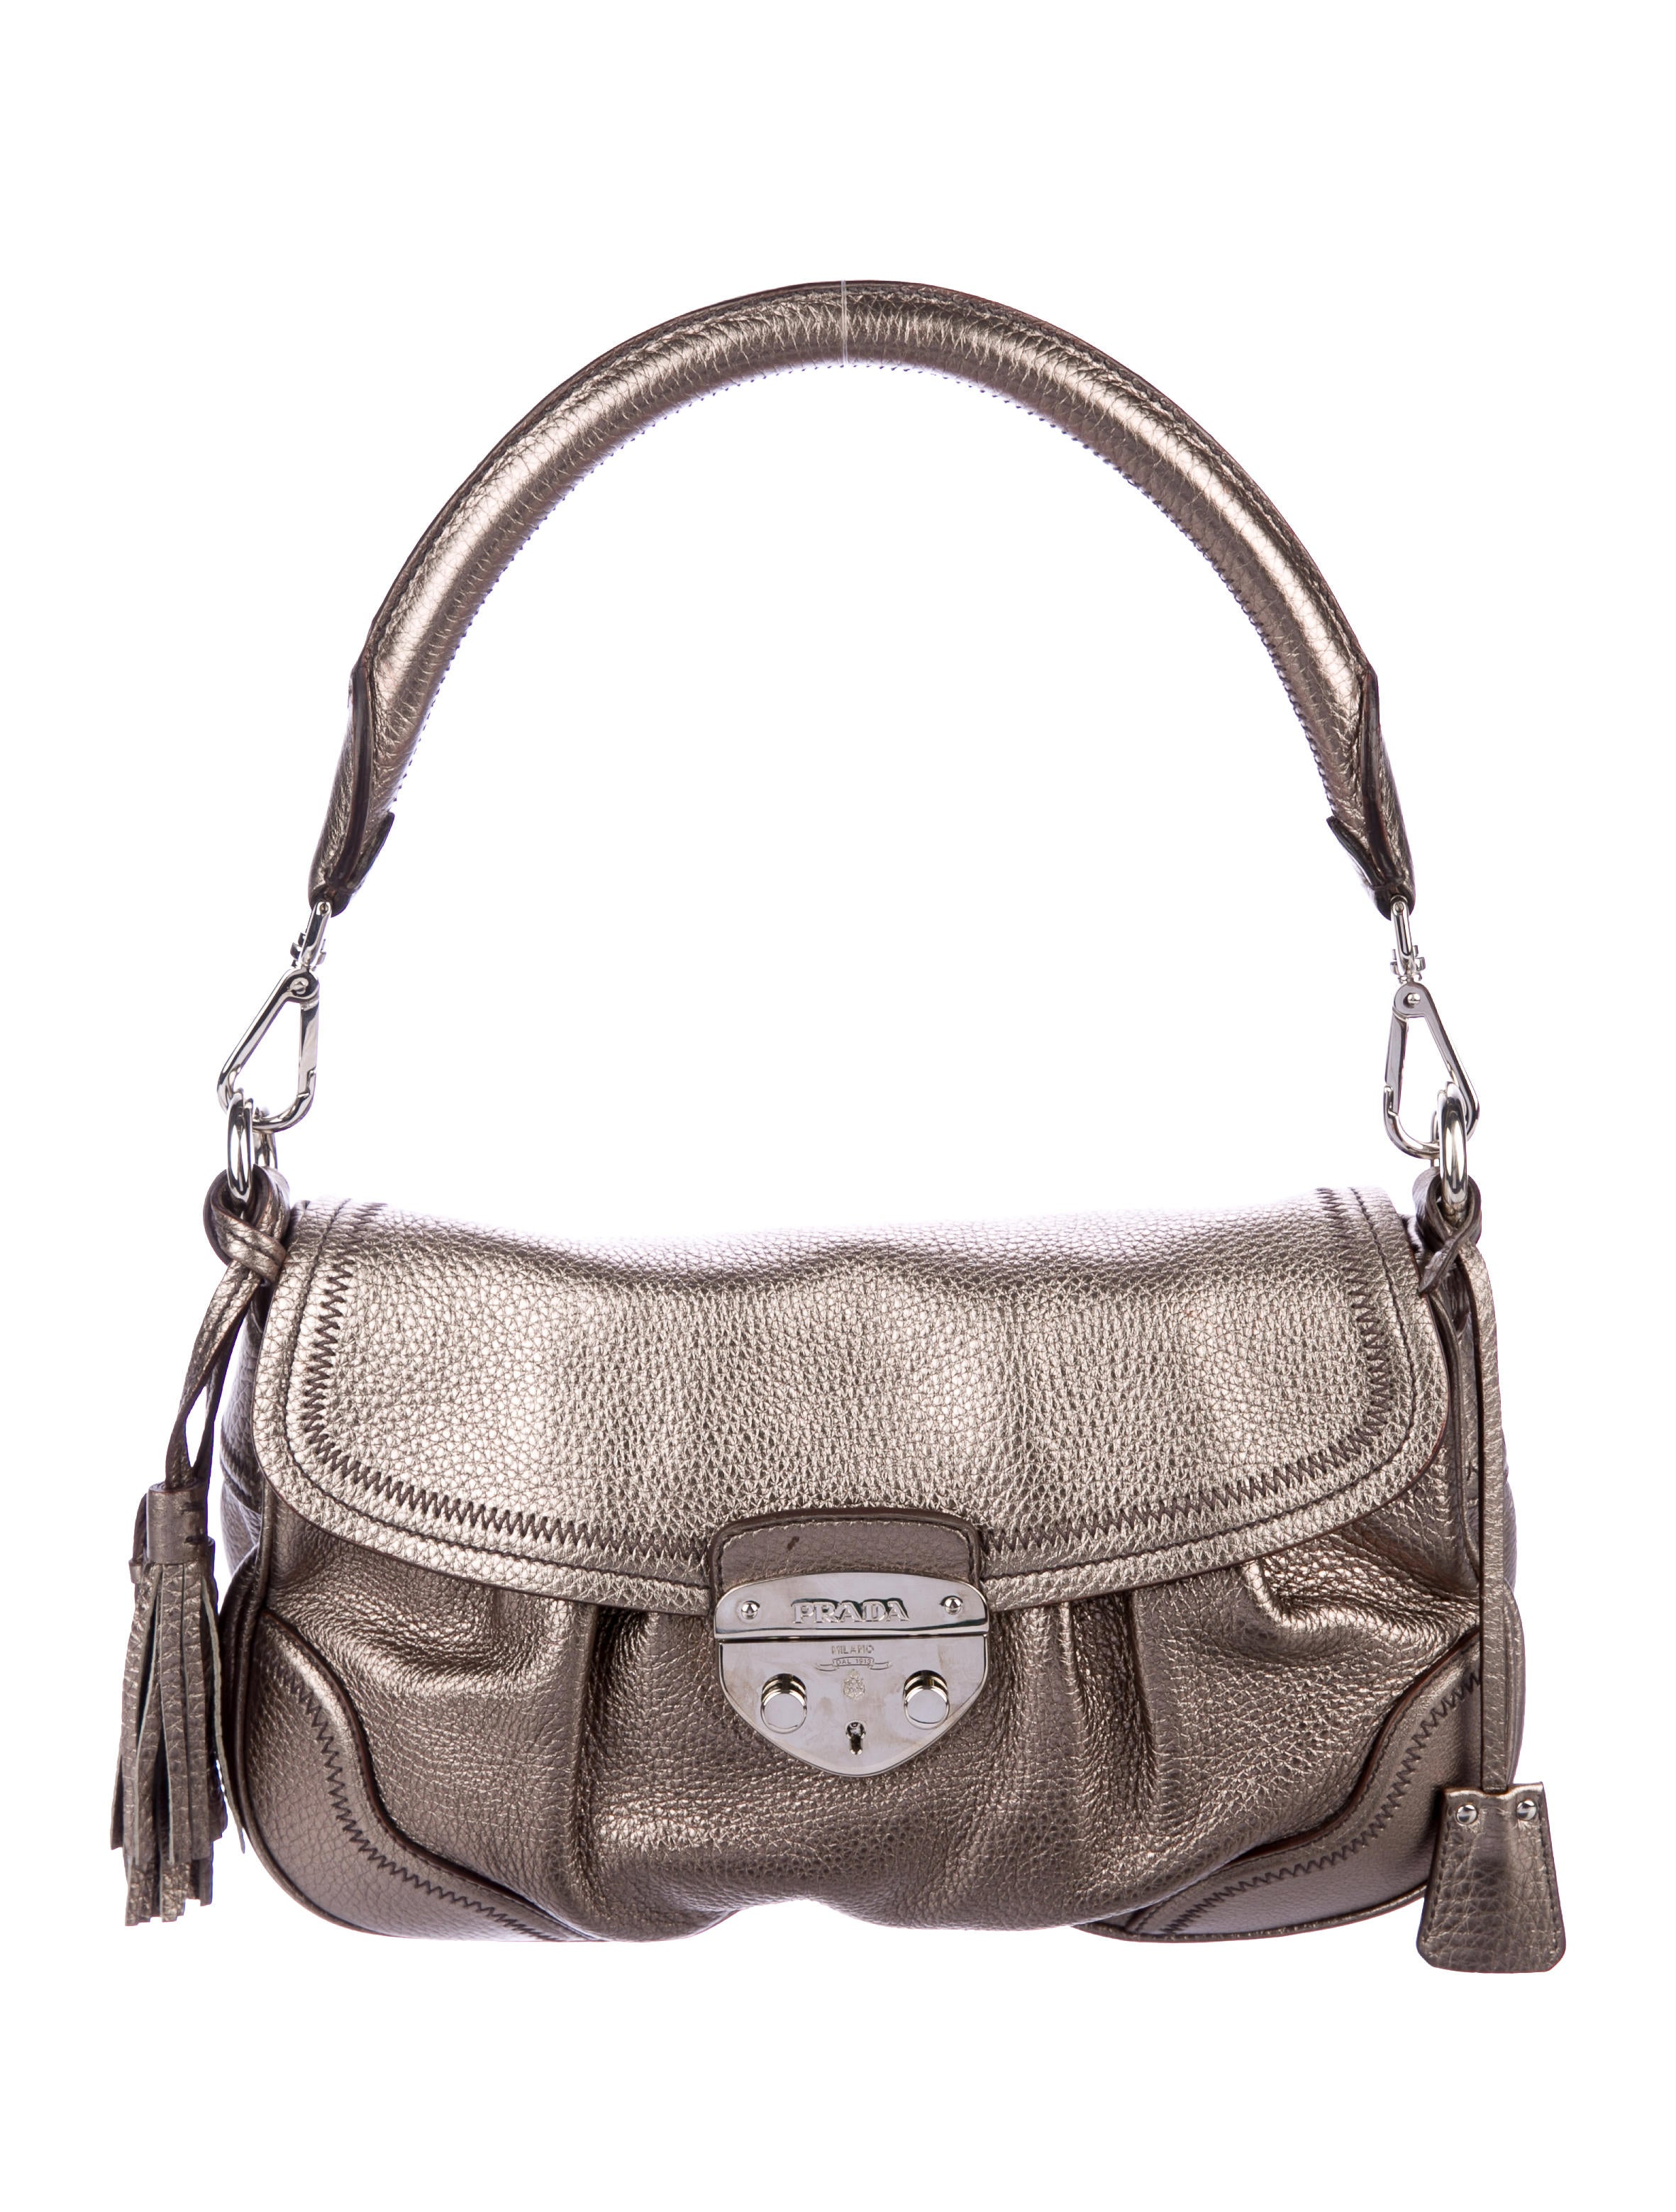 dc53e47f8621 Prada Vitello Daino Hobo - Handbags - PRA210005